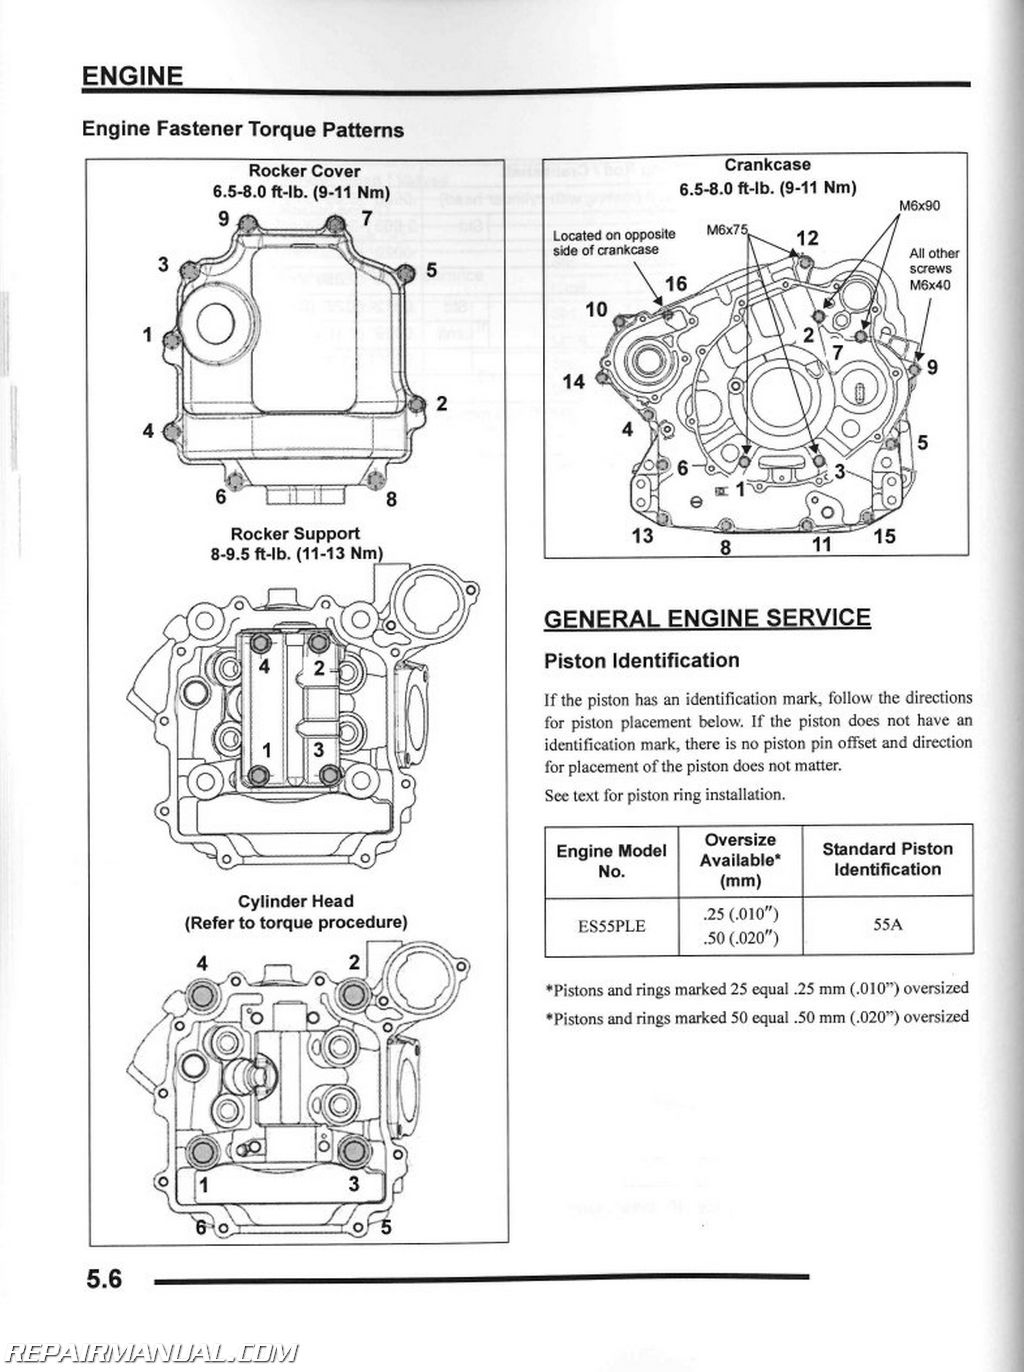 2011 Polaris Rzr 800 Wiring Diagram Opinions About 2010 Sportsman Xp 550 Atv Service Manual 2009